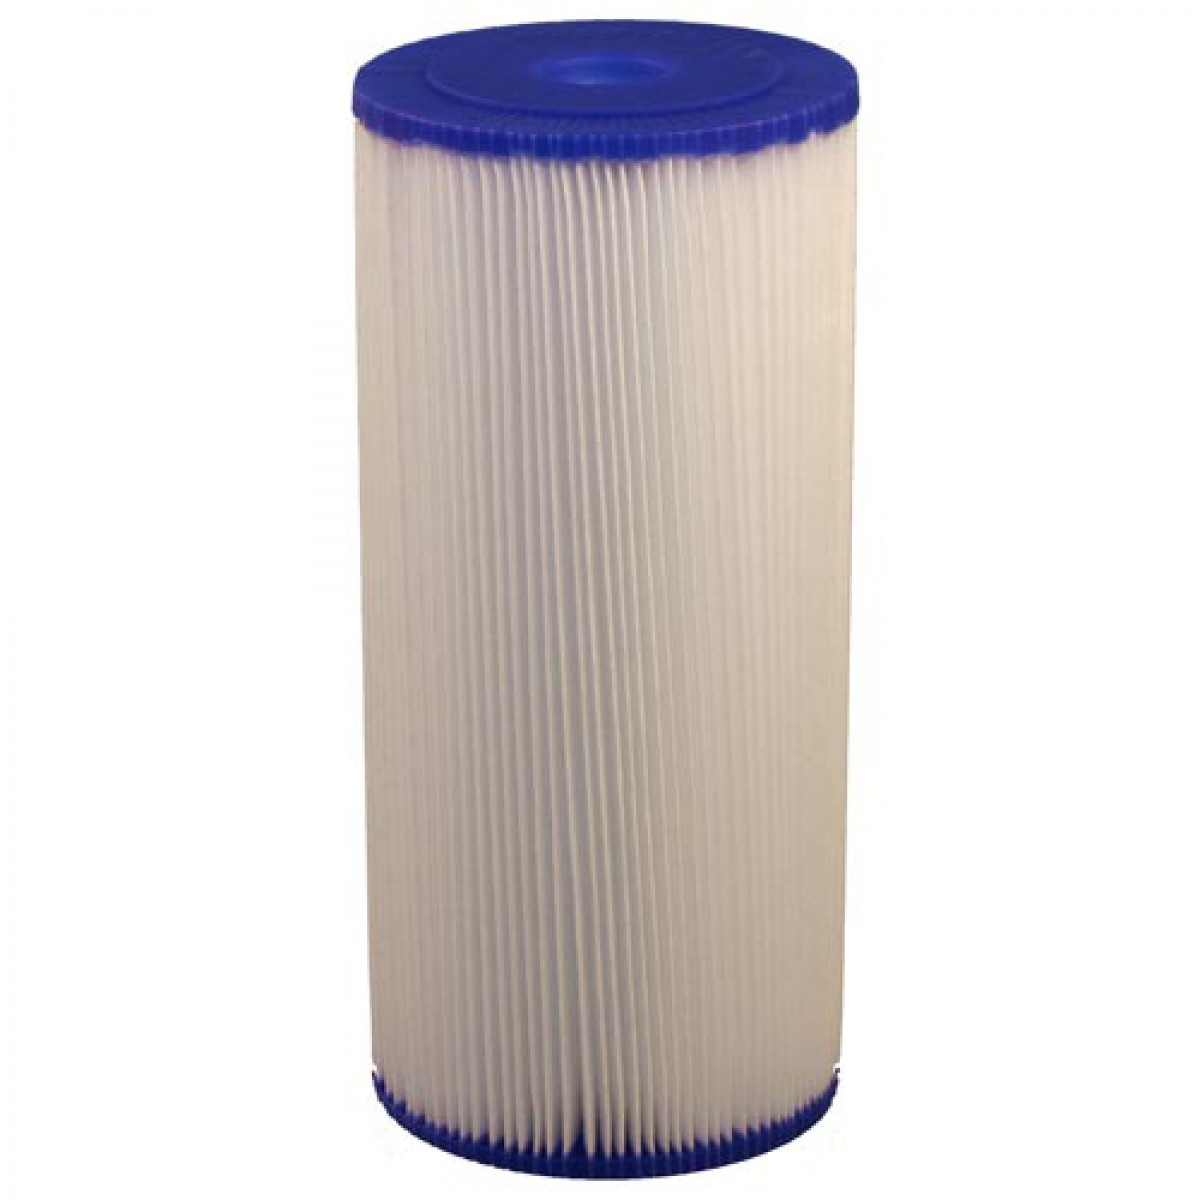 Home > R30 BB Pentek Whole House Water Filter Replacement Cartridge #171847